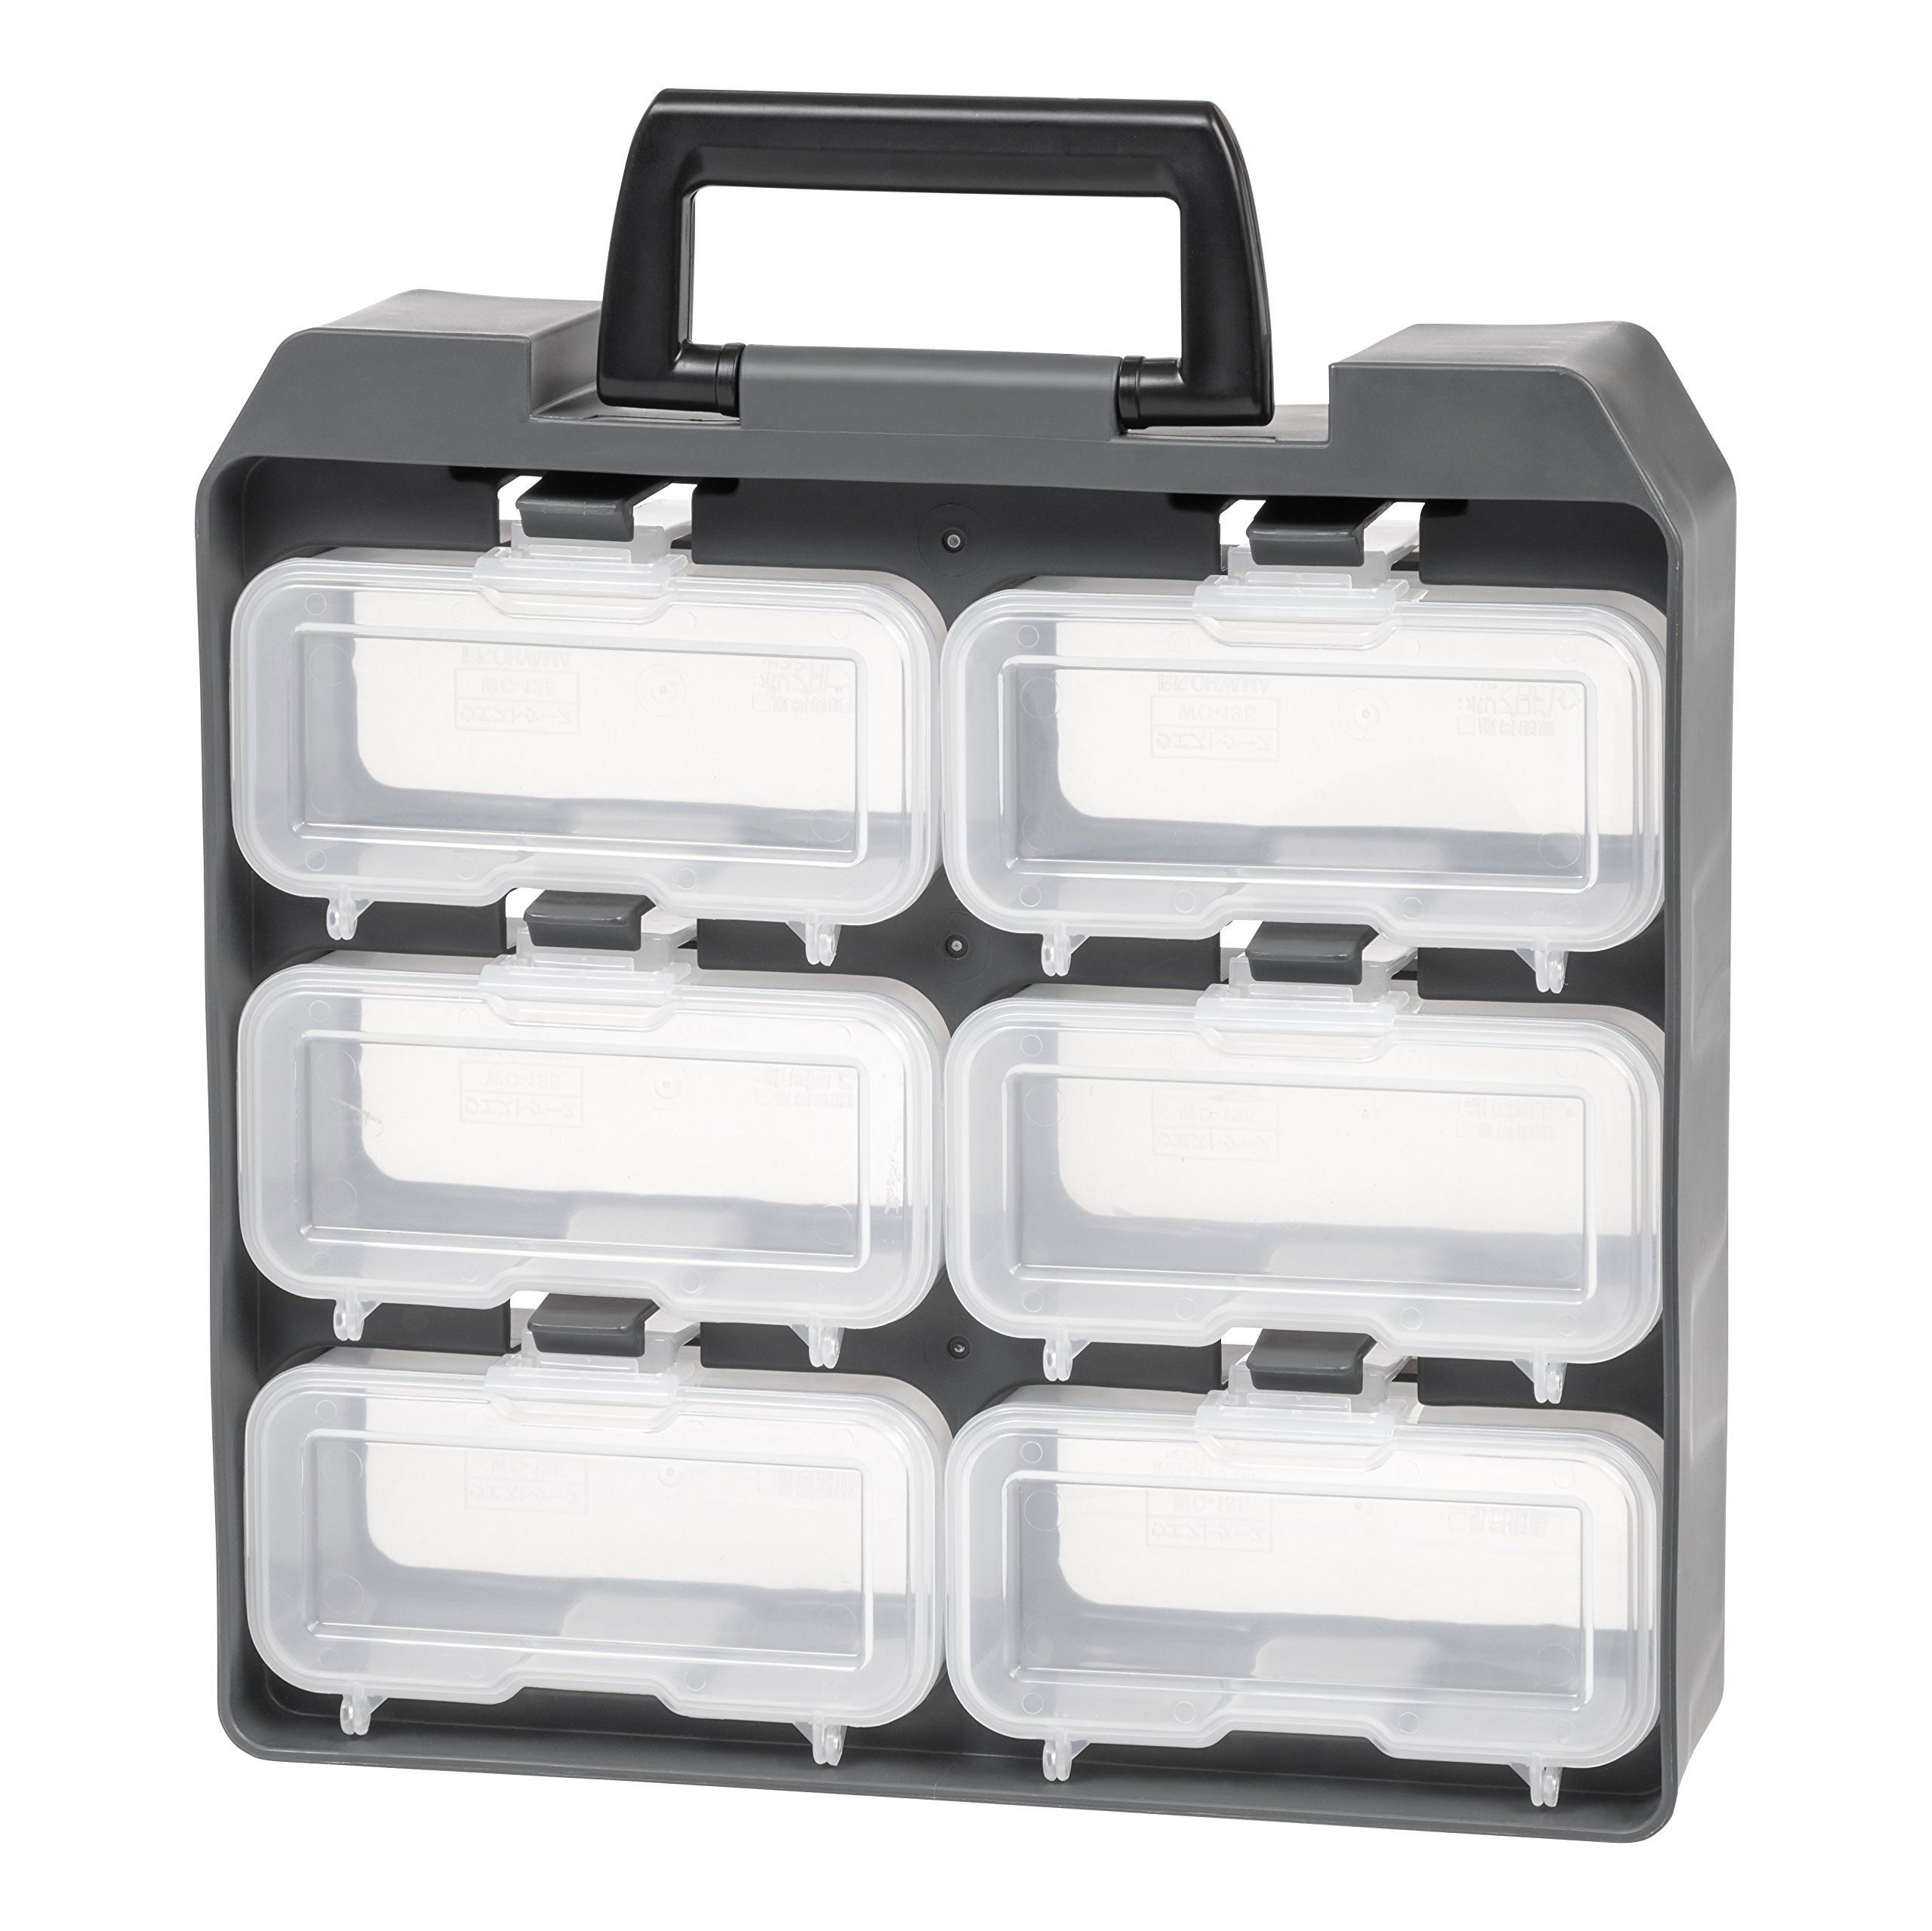 IRIS USA 6 Compartment Utility Case, Gray by IRIS USA, Inc.